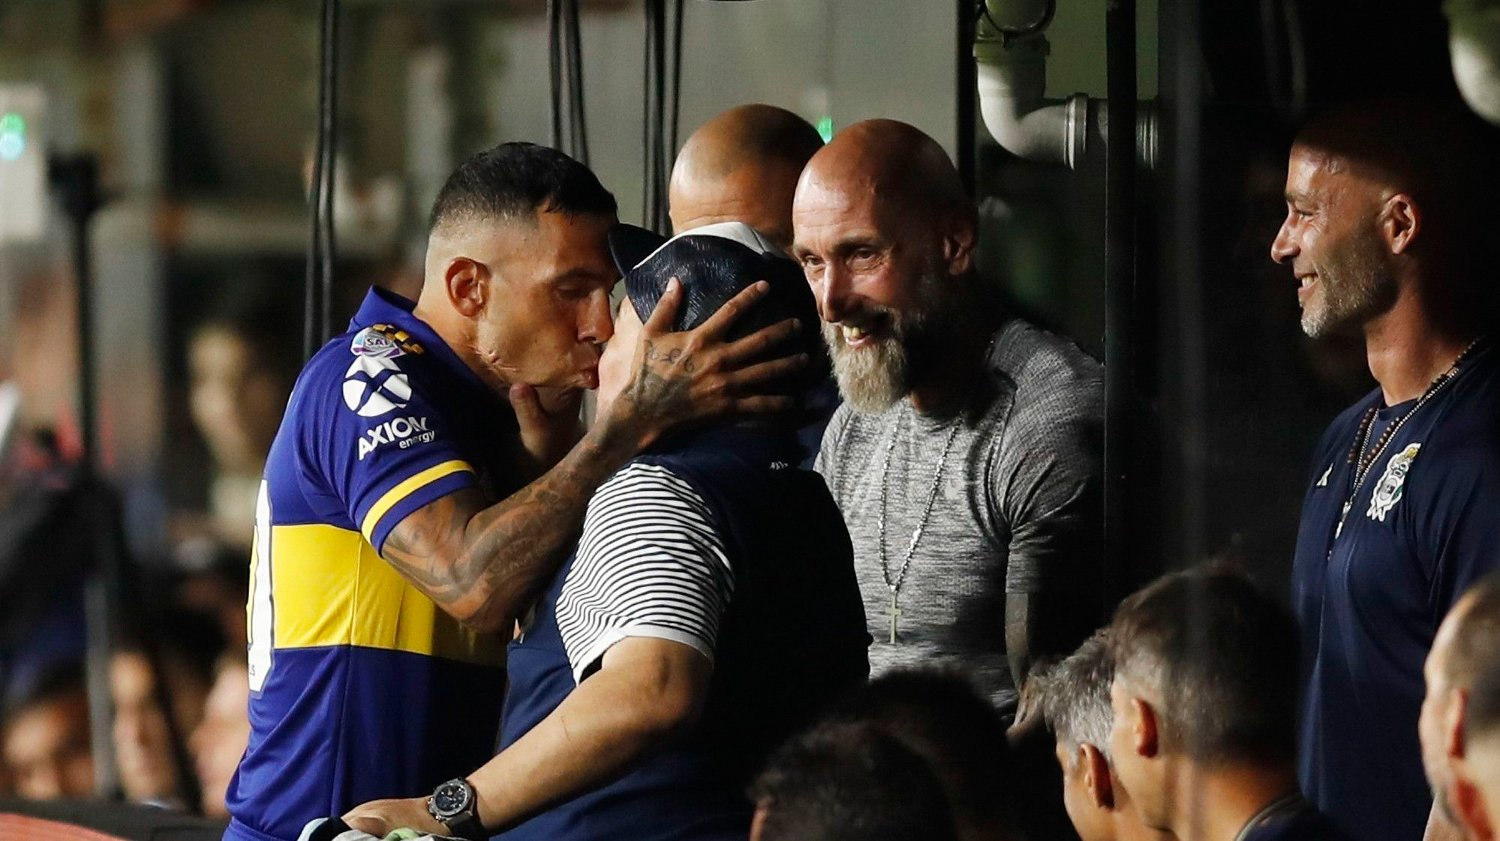 Boca Juniors' Carlos Tevez kisses Gimnasia y Esgrima 's coach Diego Maradona prior to an Argentina's soccer league match at La Bombonera stadium in Buenos Aires, Argentina, Saturday, March 7, 2020.